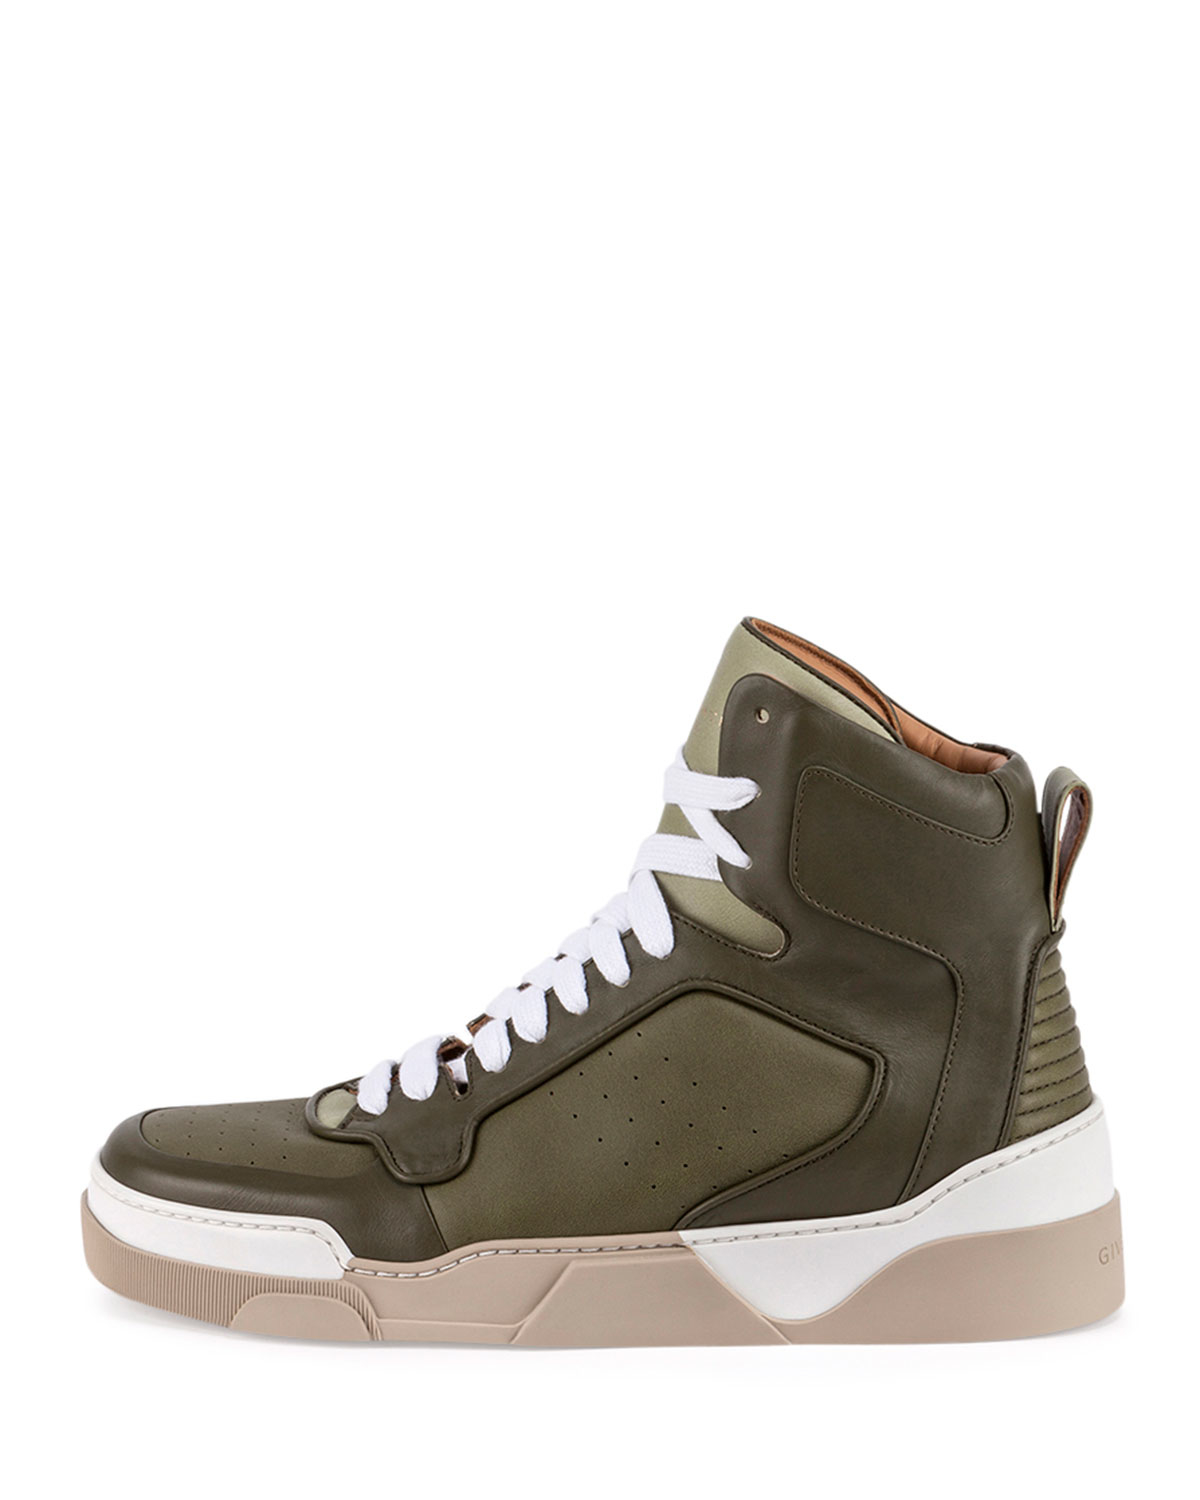 Givenchy Tyson Leather High-top Sneaker